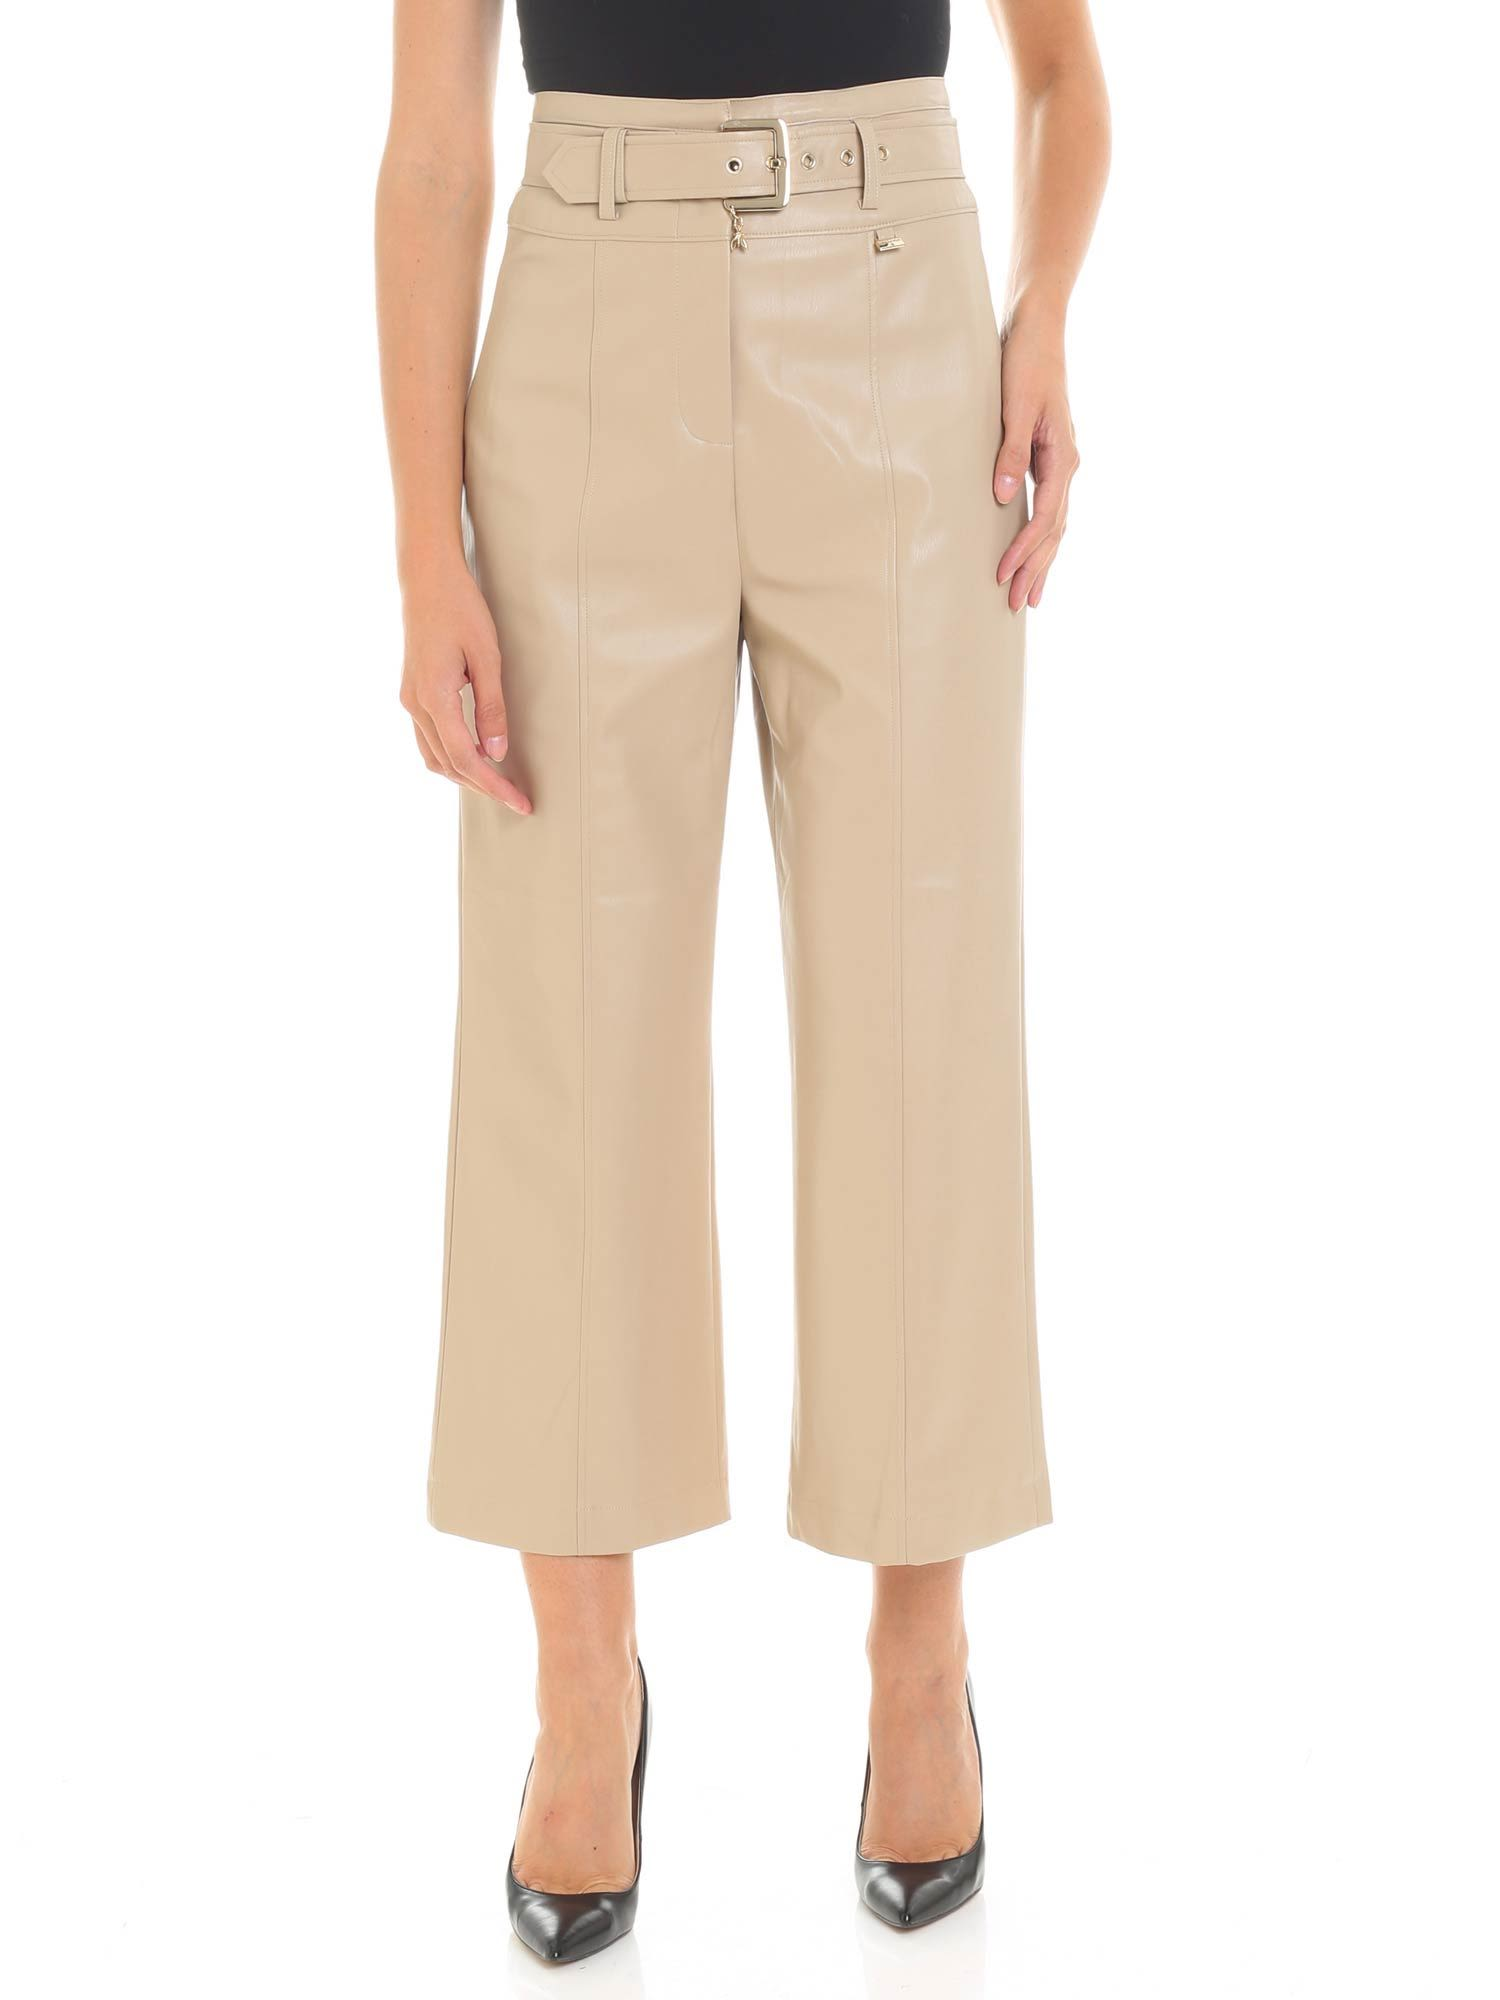 Patrizia Pepe Cropped Faux Leather Trousers